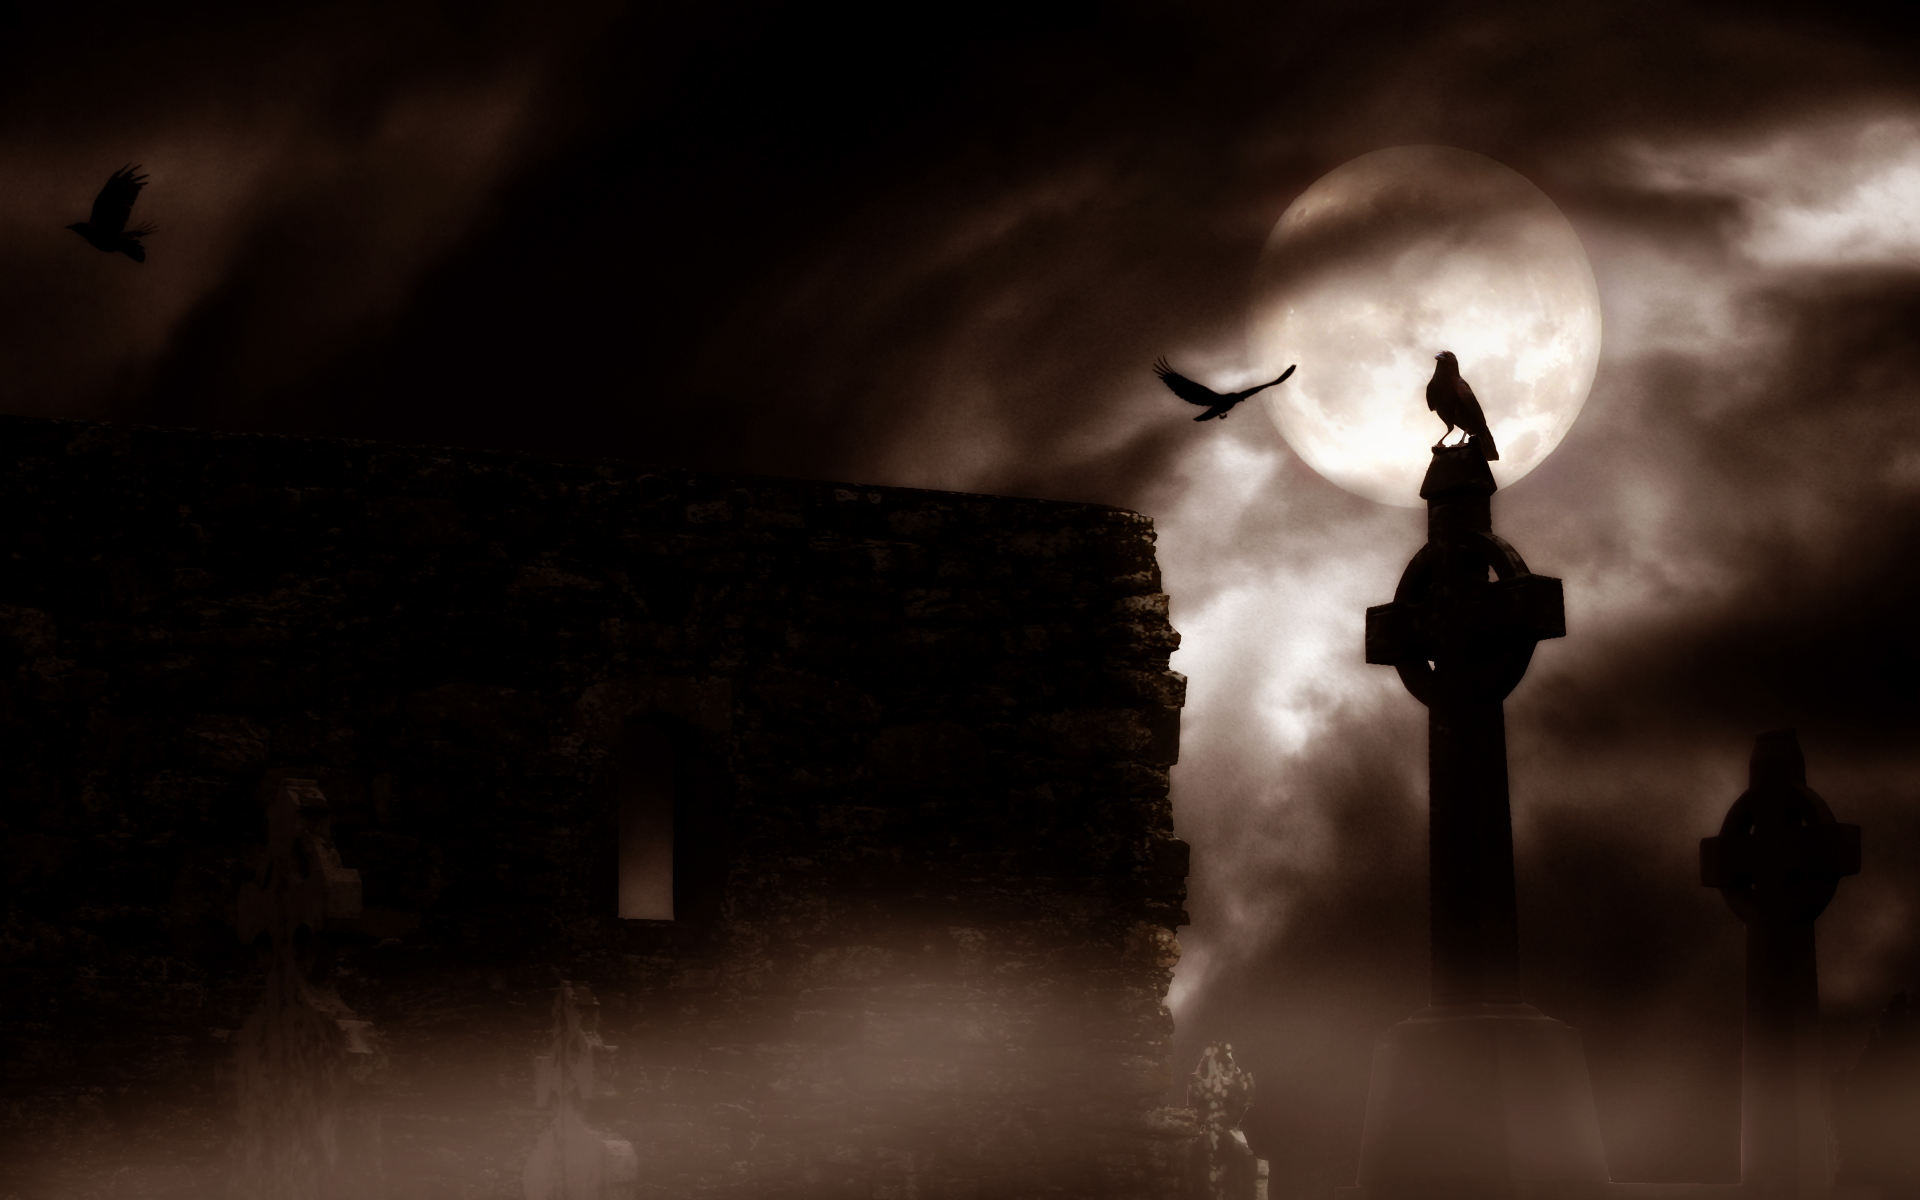 Dark Gothic Wallpaper 4265